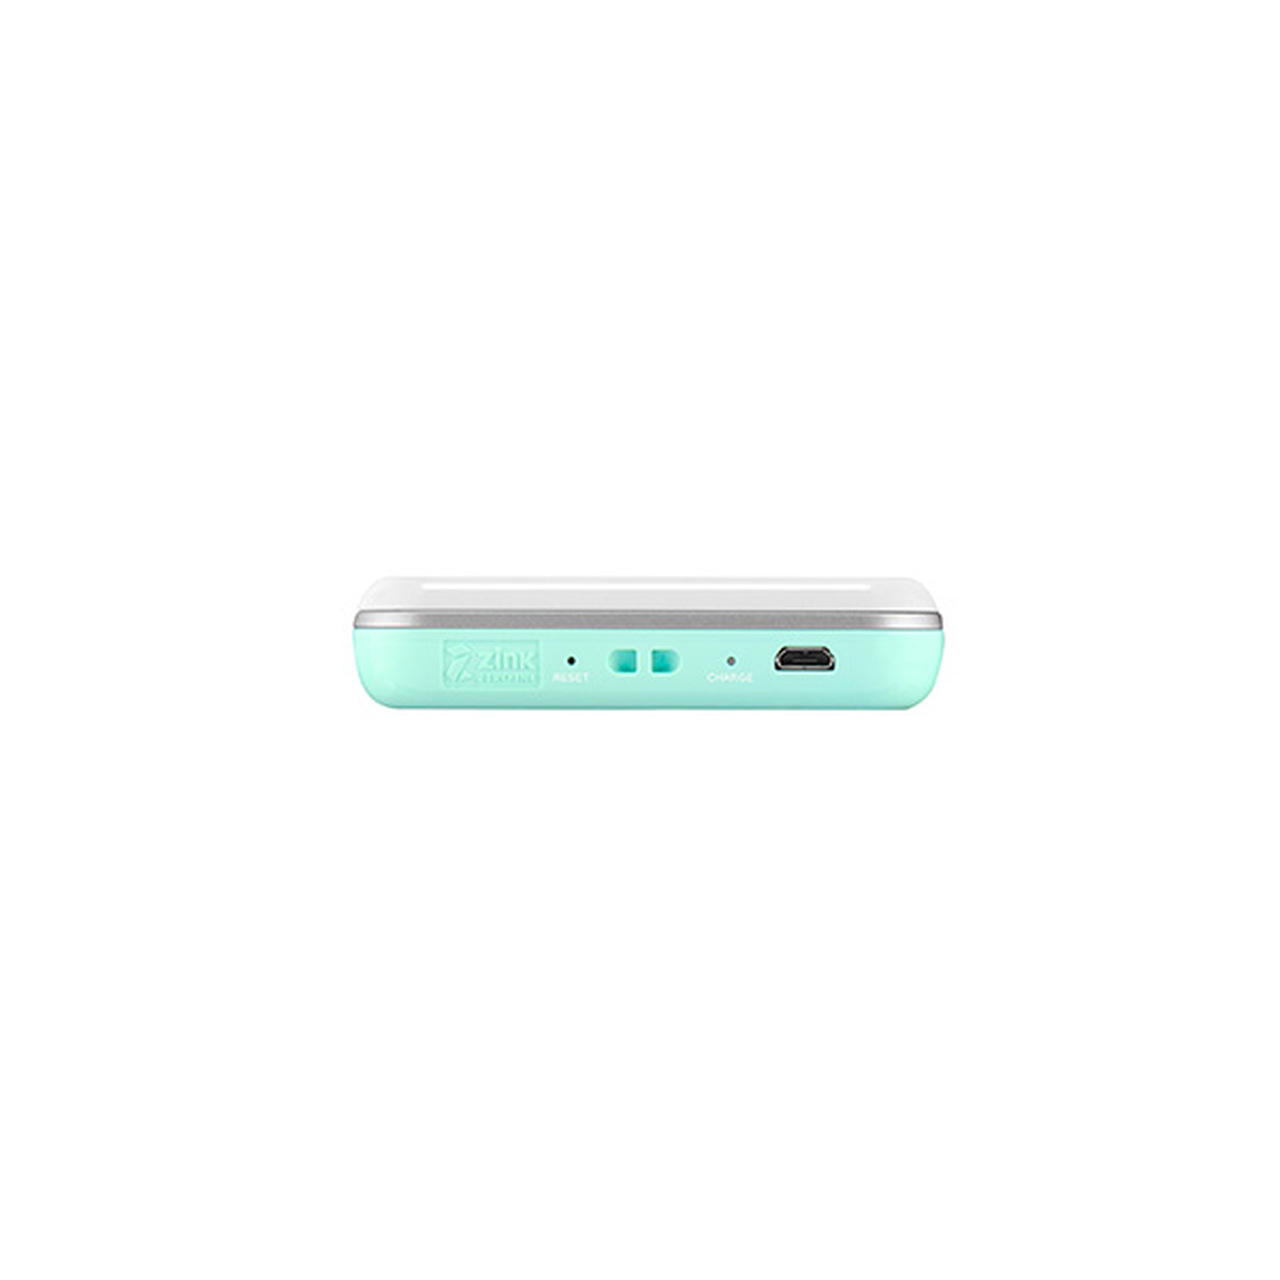 Canon Ivy 2x3 Printer Mint Green